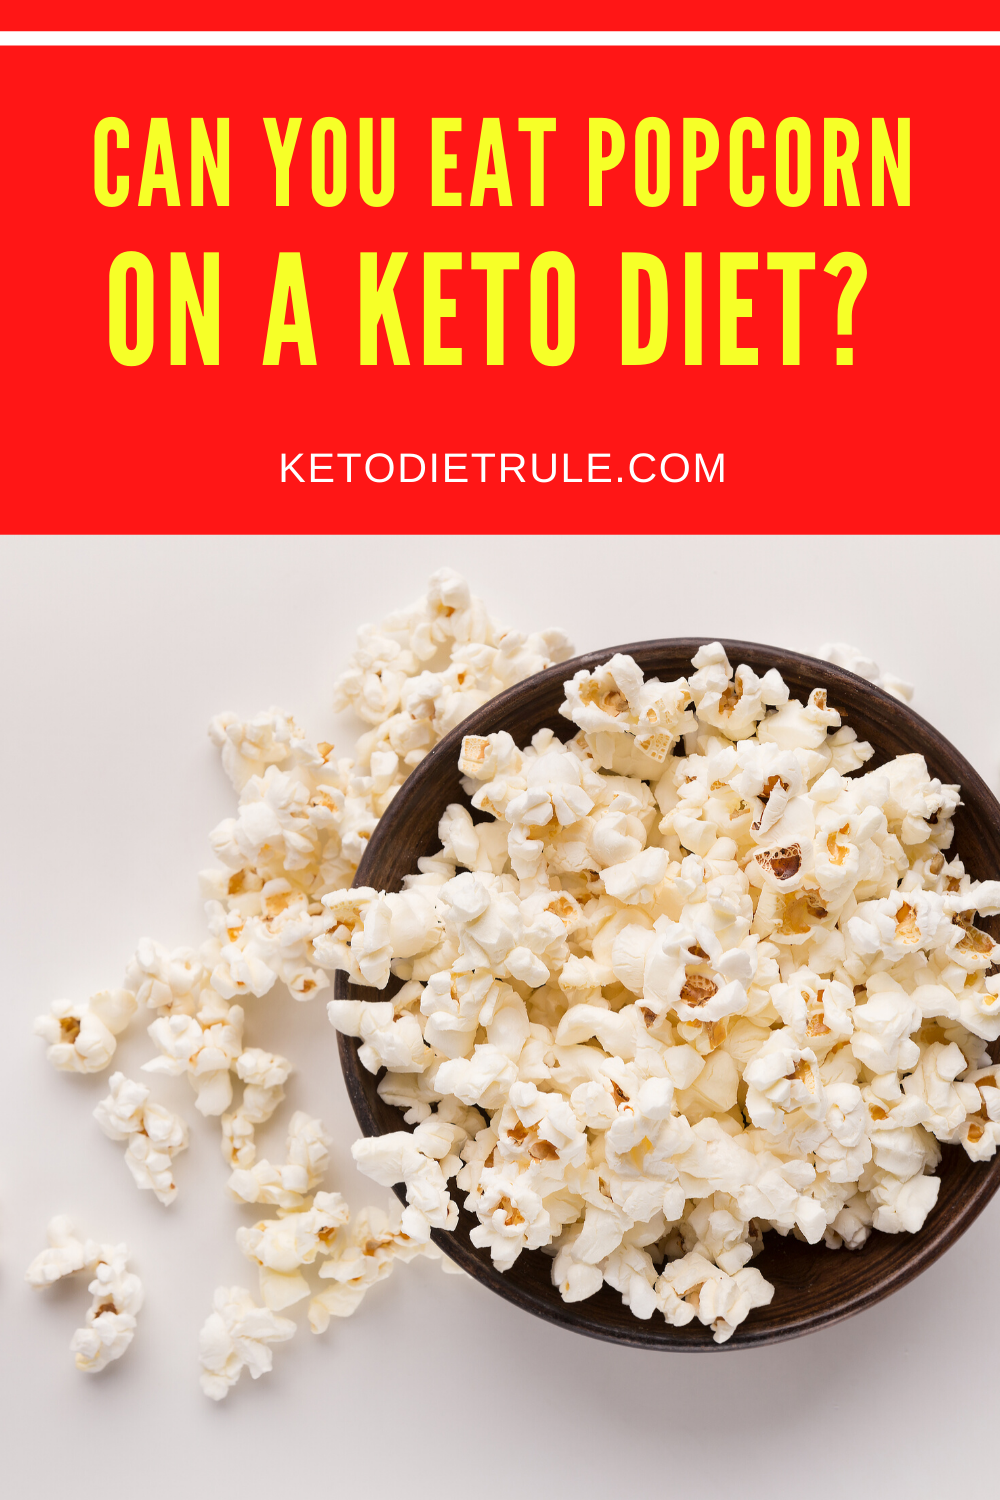 can i eat popcorn on low carb diet?